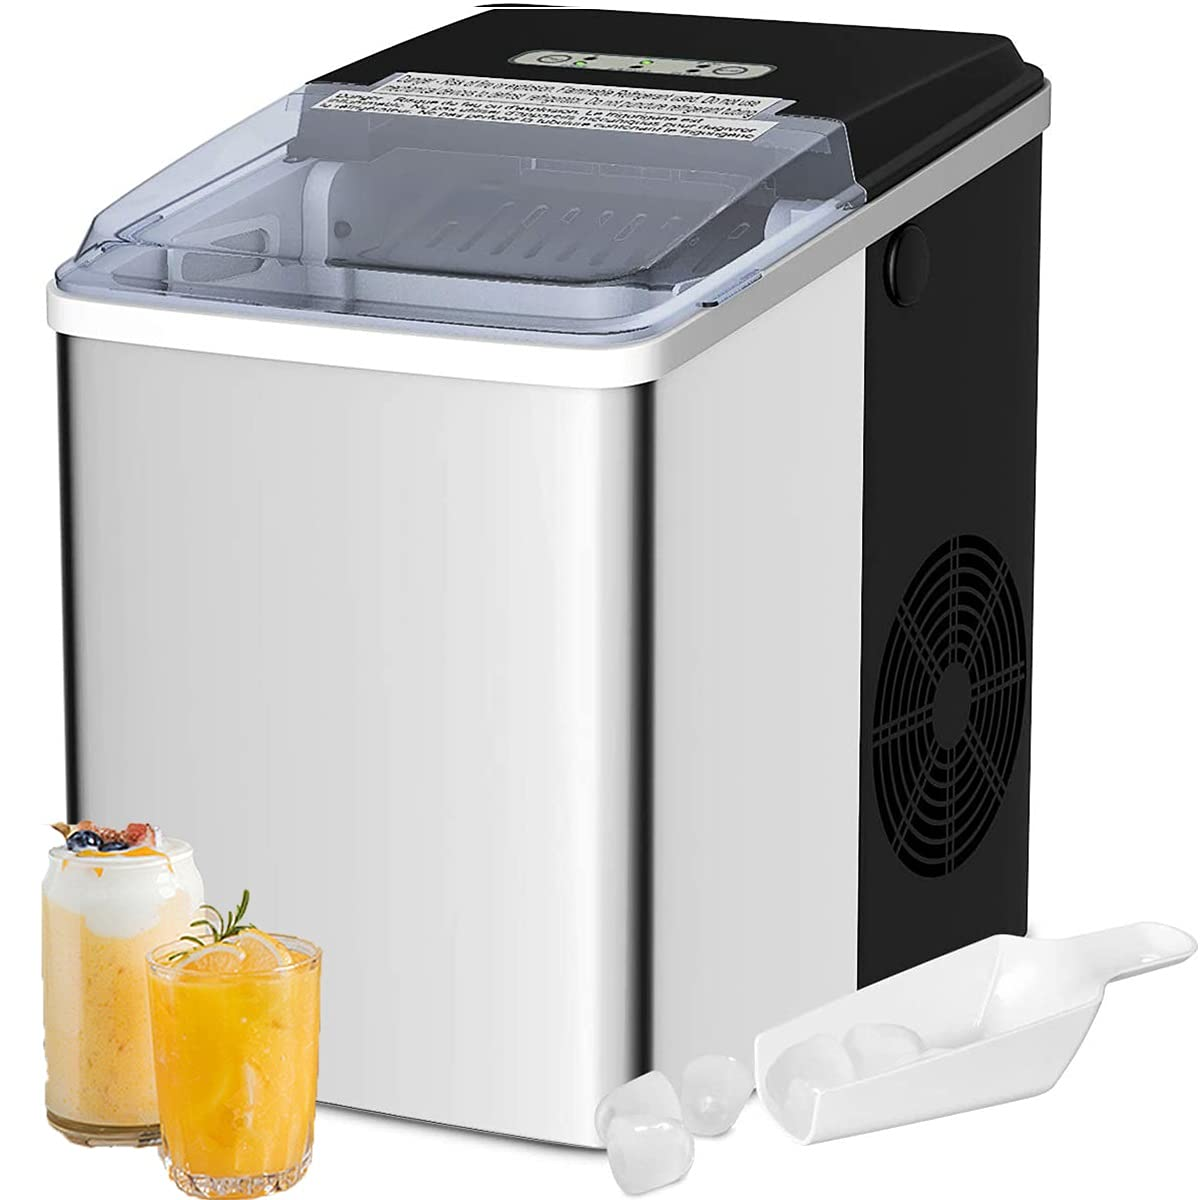 Countertop Ice Price reduction Makers Machine 26.5 24 Electric Portable Hour LBS Free shipping on posting reviews